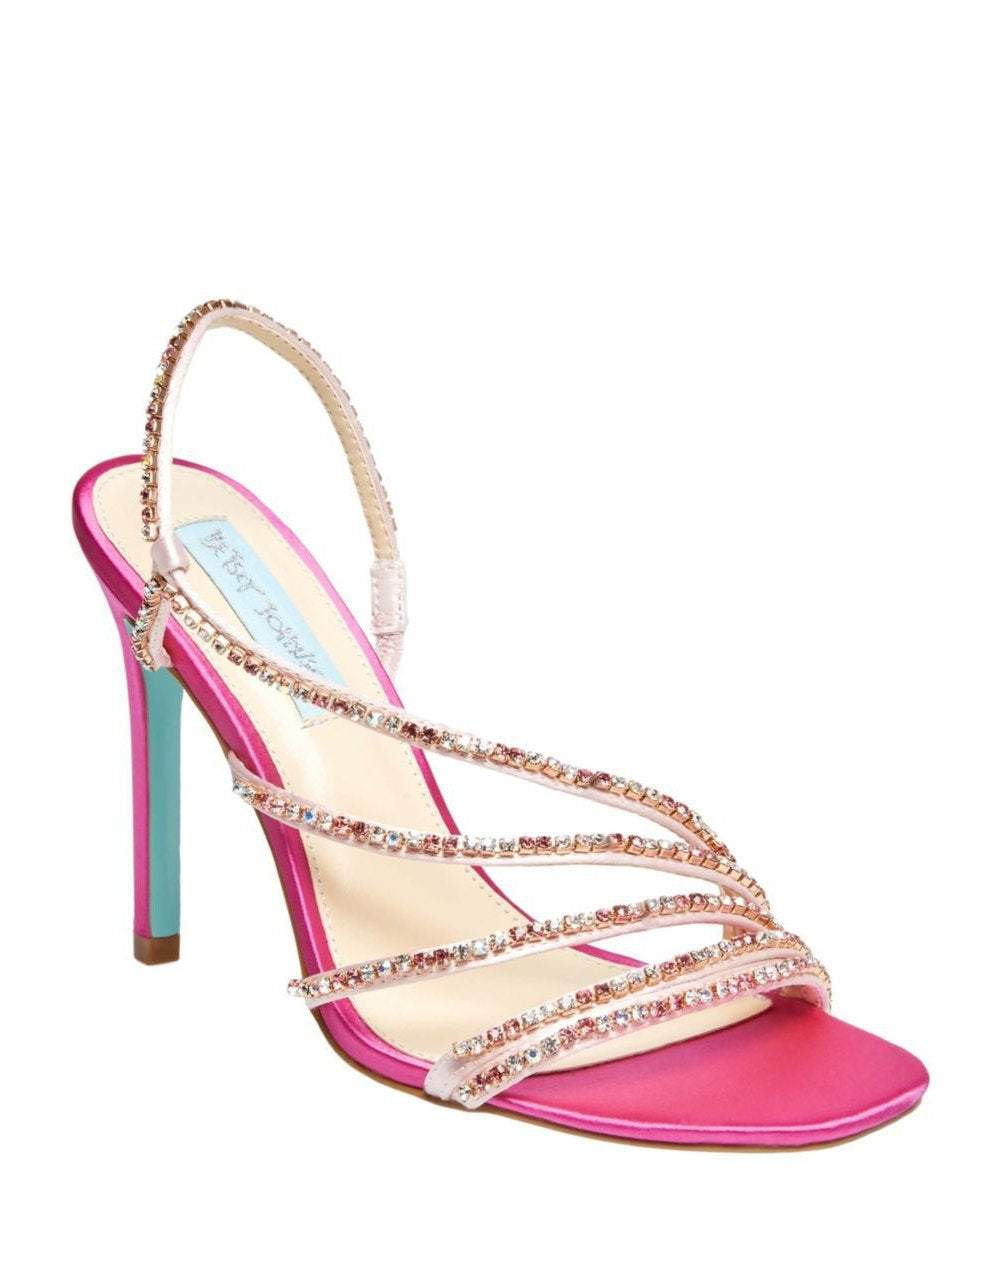 SB-ACES FUSCH STN - SHOES - Betsey Johnson